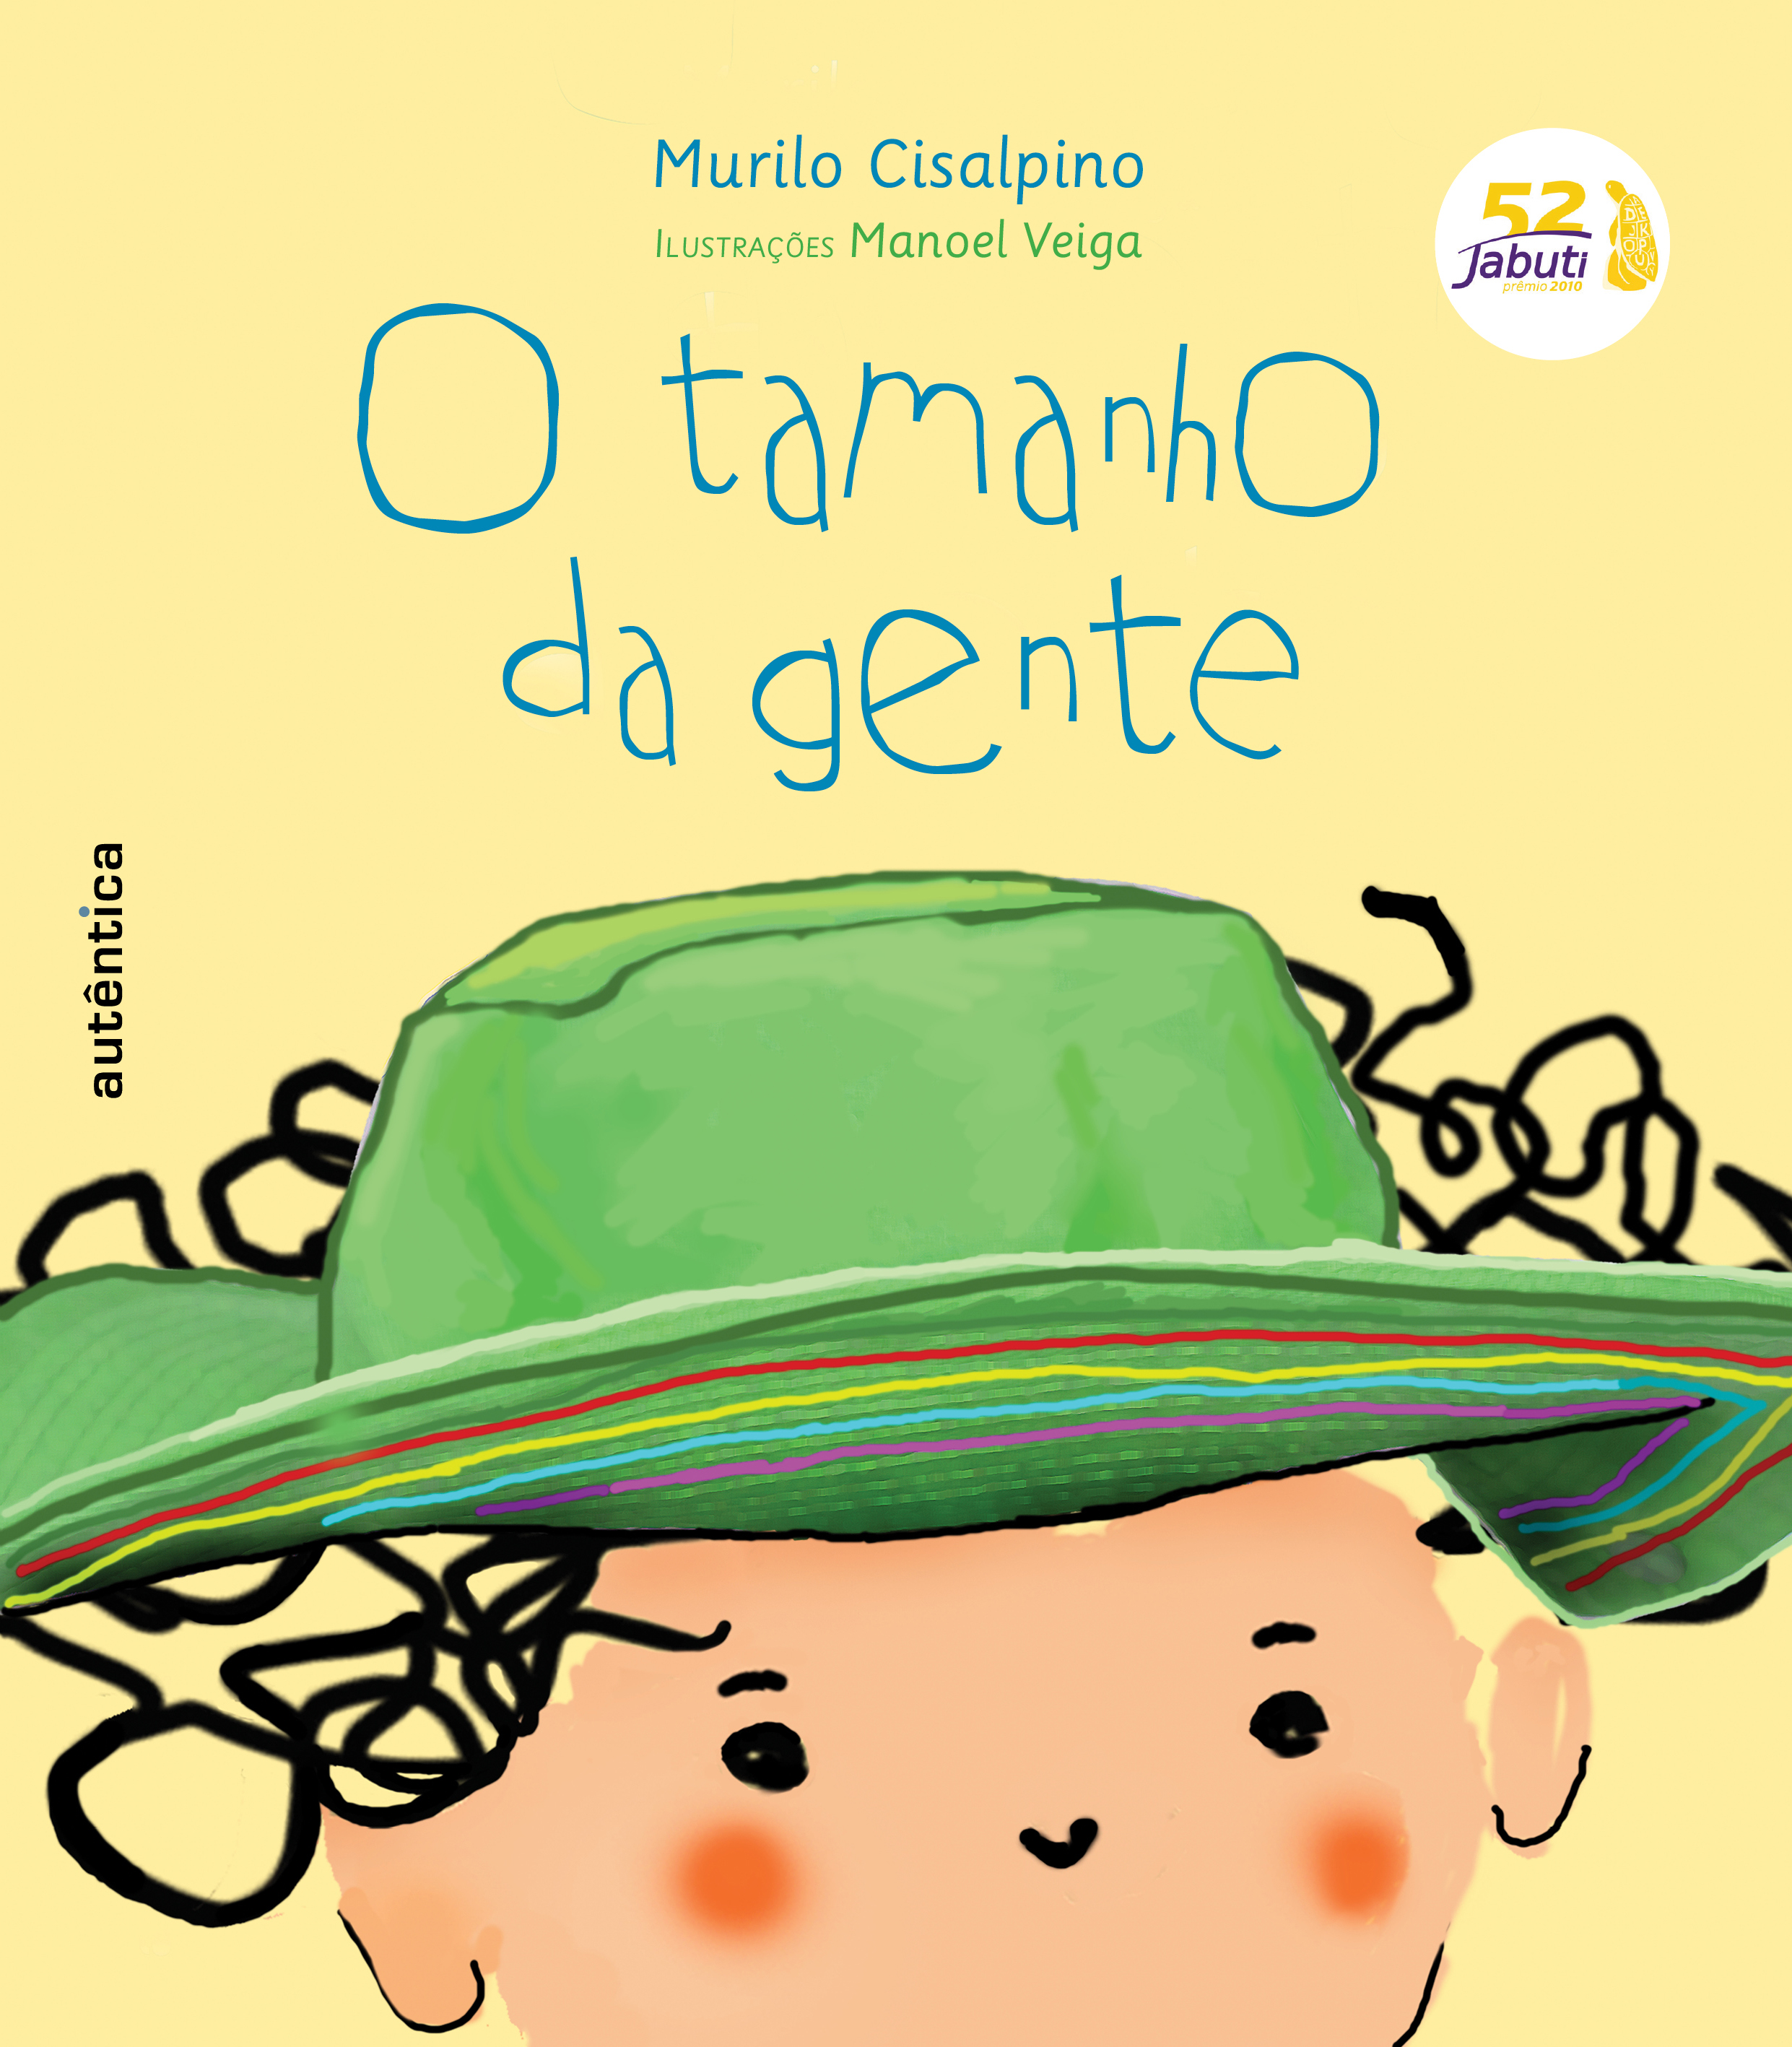 3feb5bfdf60 Books and Rights - Brazilian Publishers